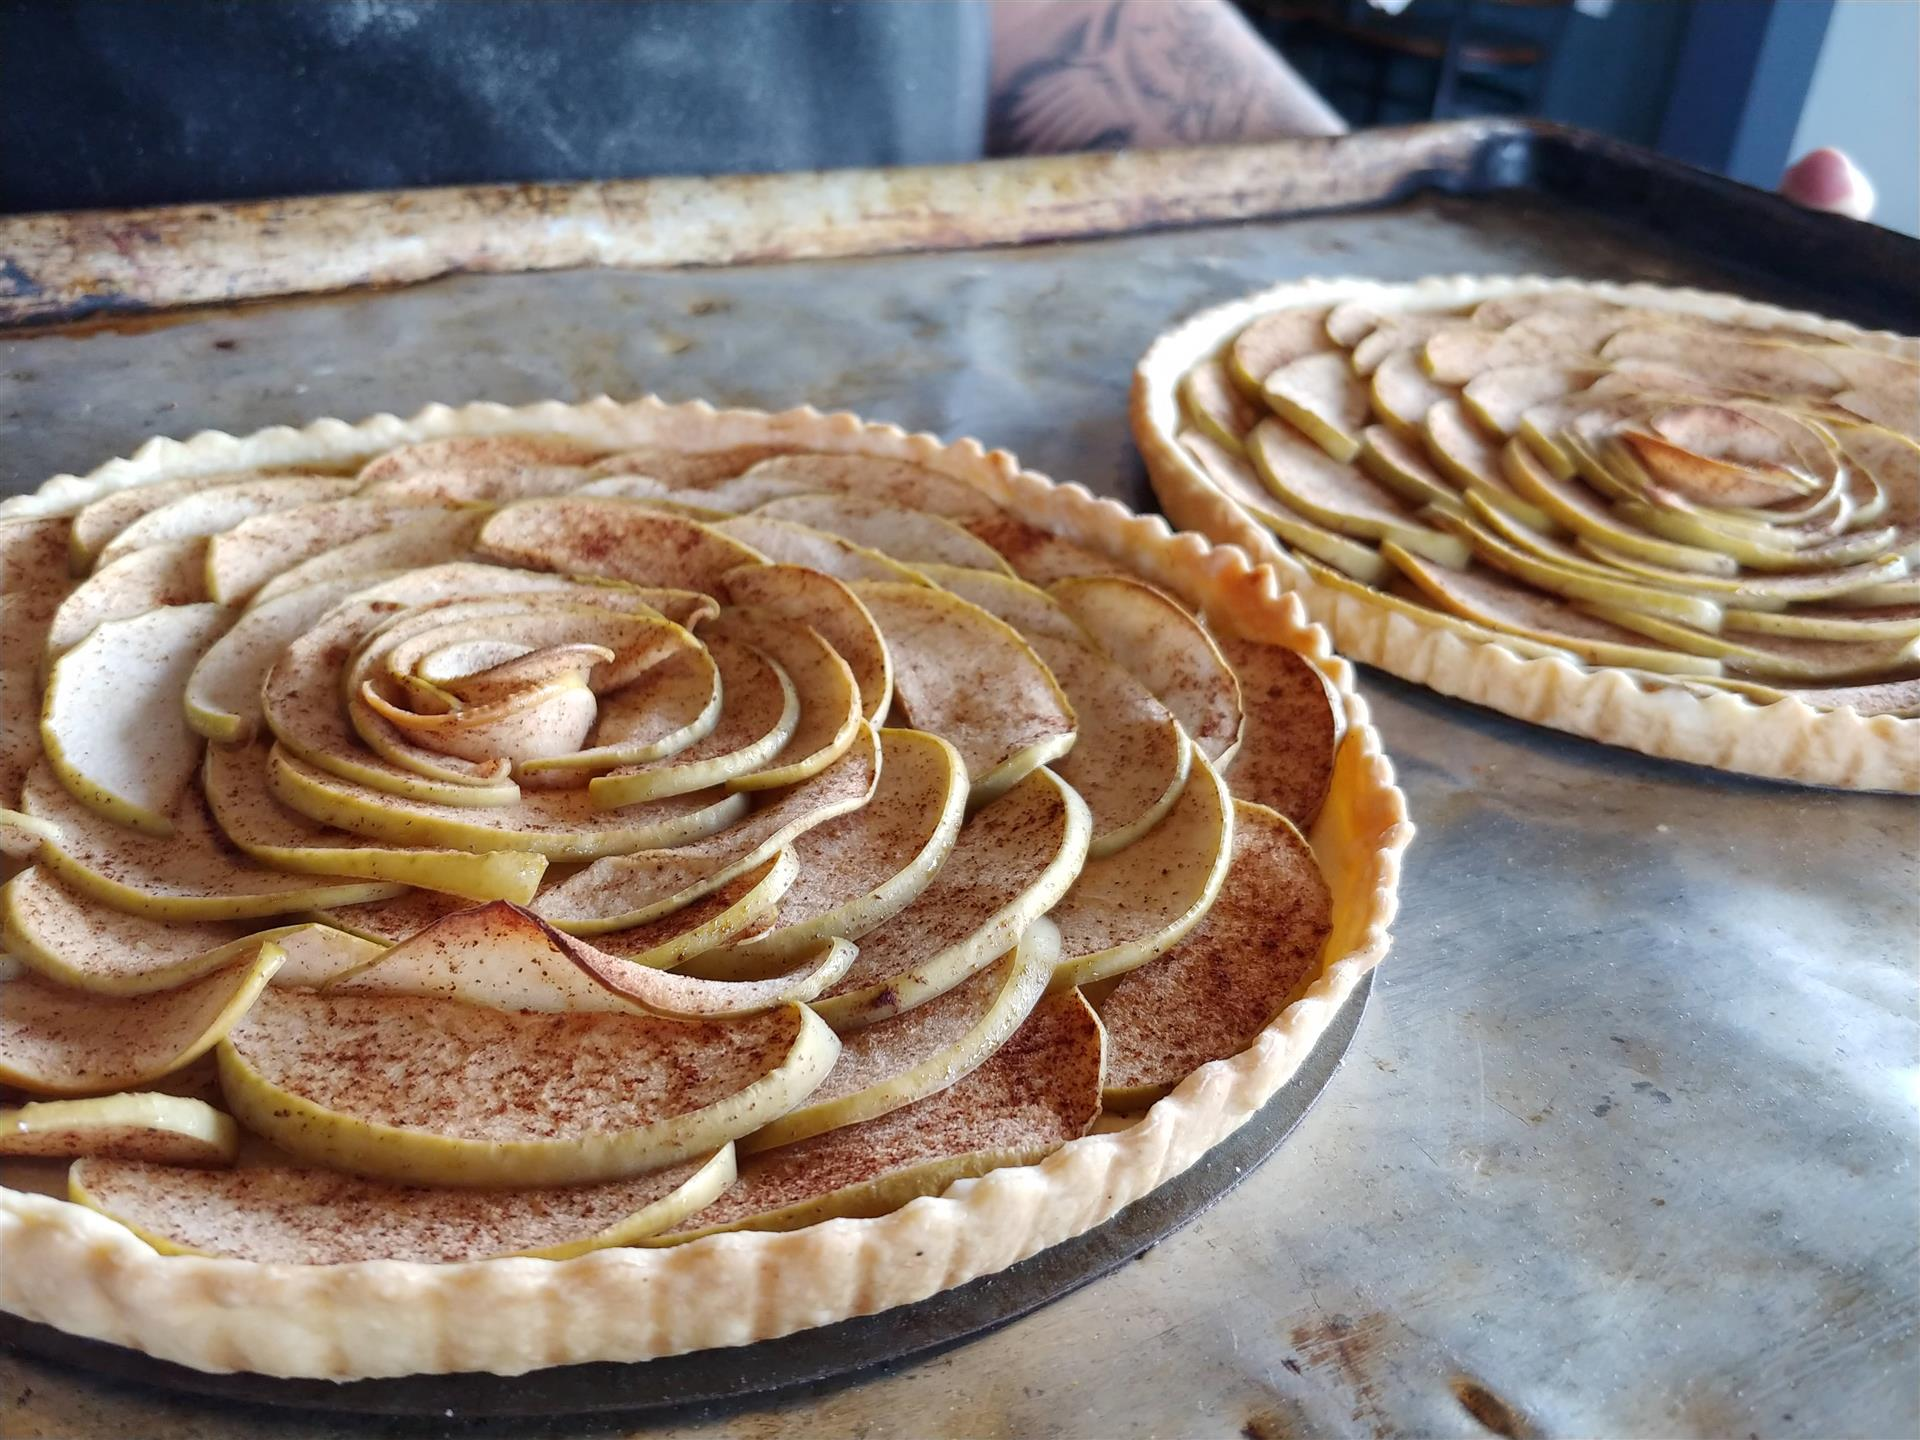 a full apple pie topped with apples to mimic flower pedals